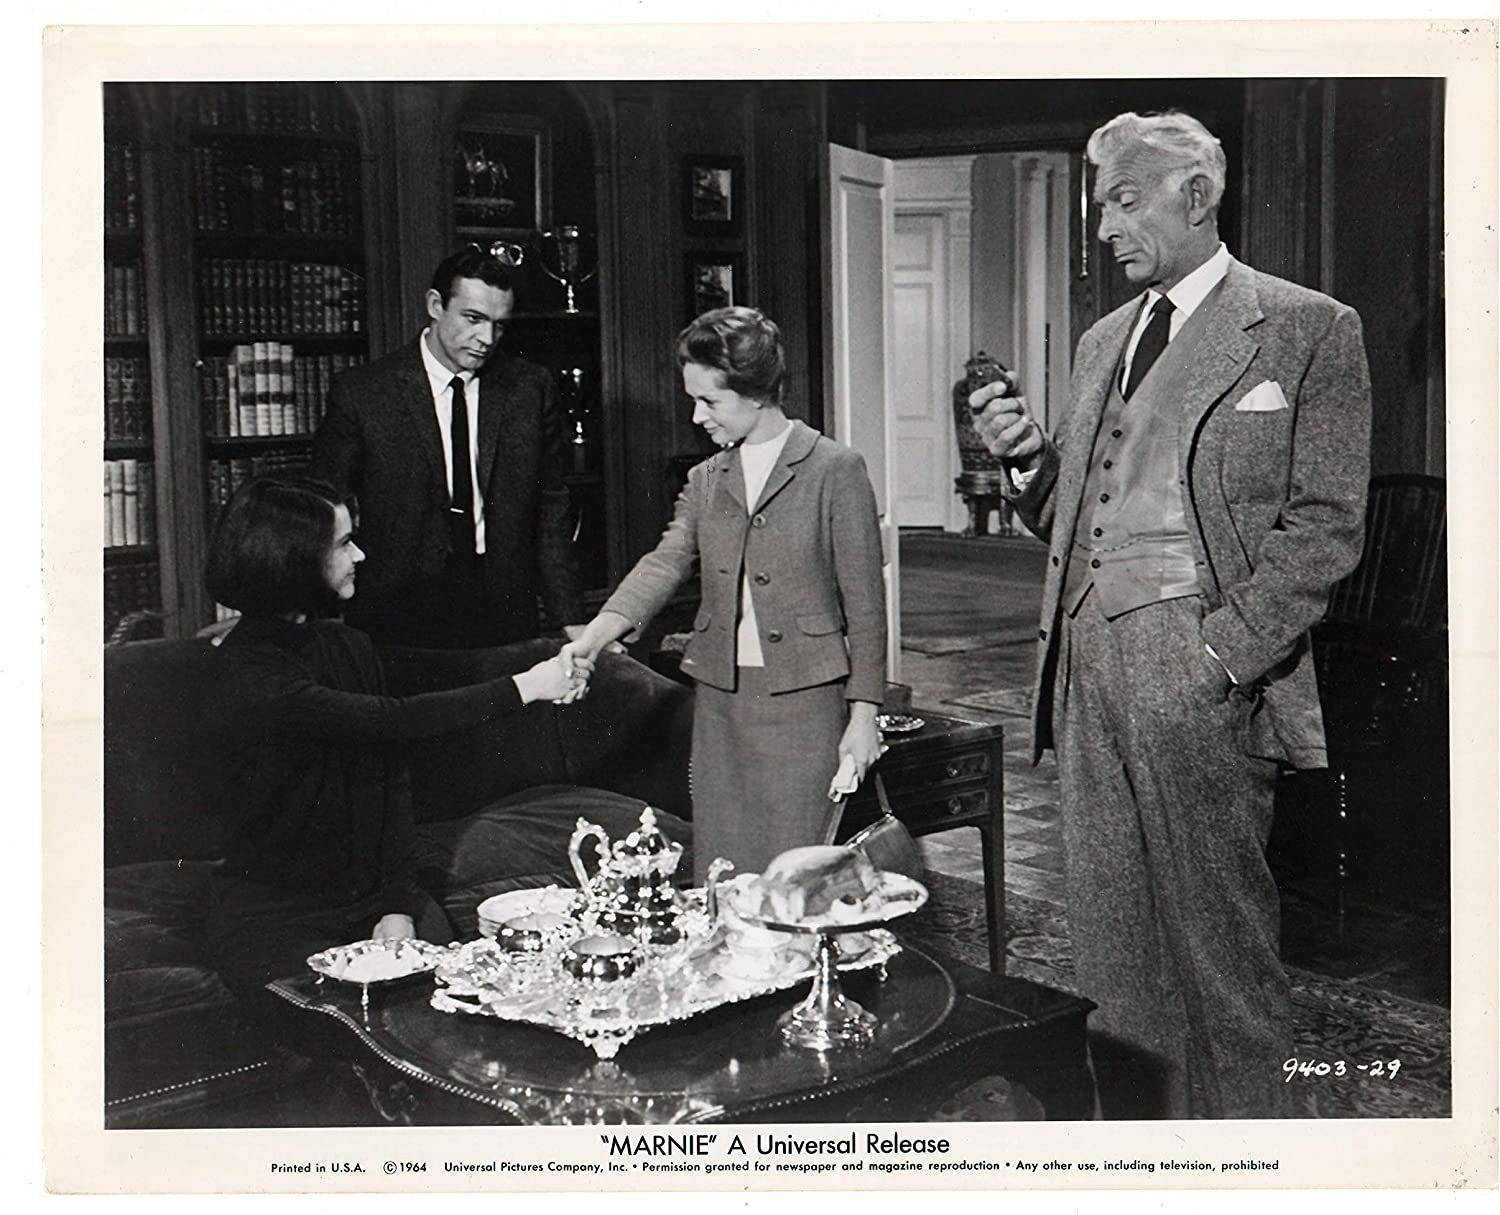 Marnie 1964 Alfred Hitchcock Tippi Hedren Sean Connery And Alan Napier An Original Universal Studios Press Photograph From The Now Classic Alfred Hitchcock Film The Photograph Is In Excellent Condition And Has The Original Alan napier was an english character actor. marnie 1964 alfred hitchcock tippi